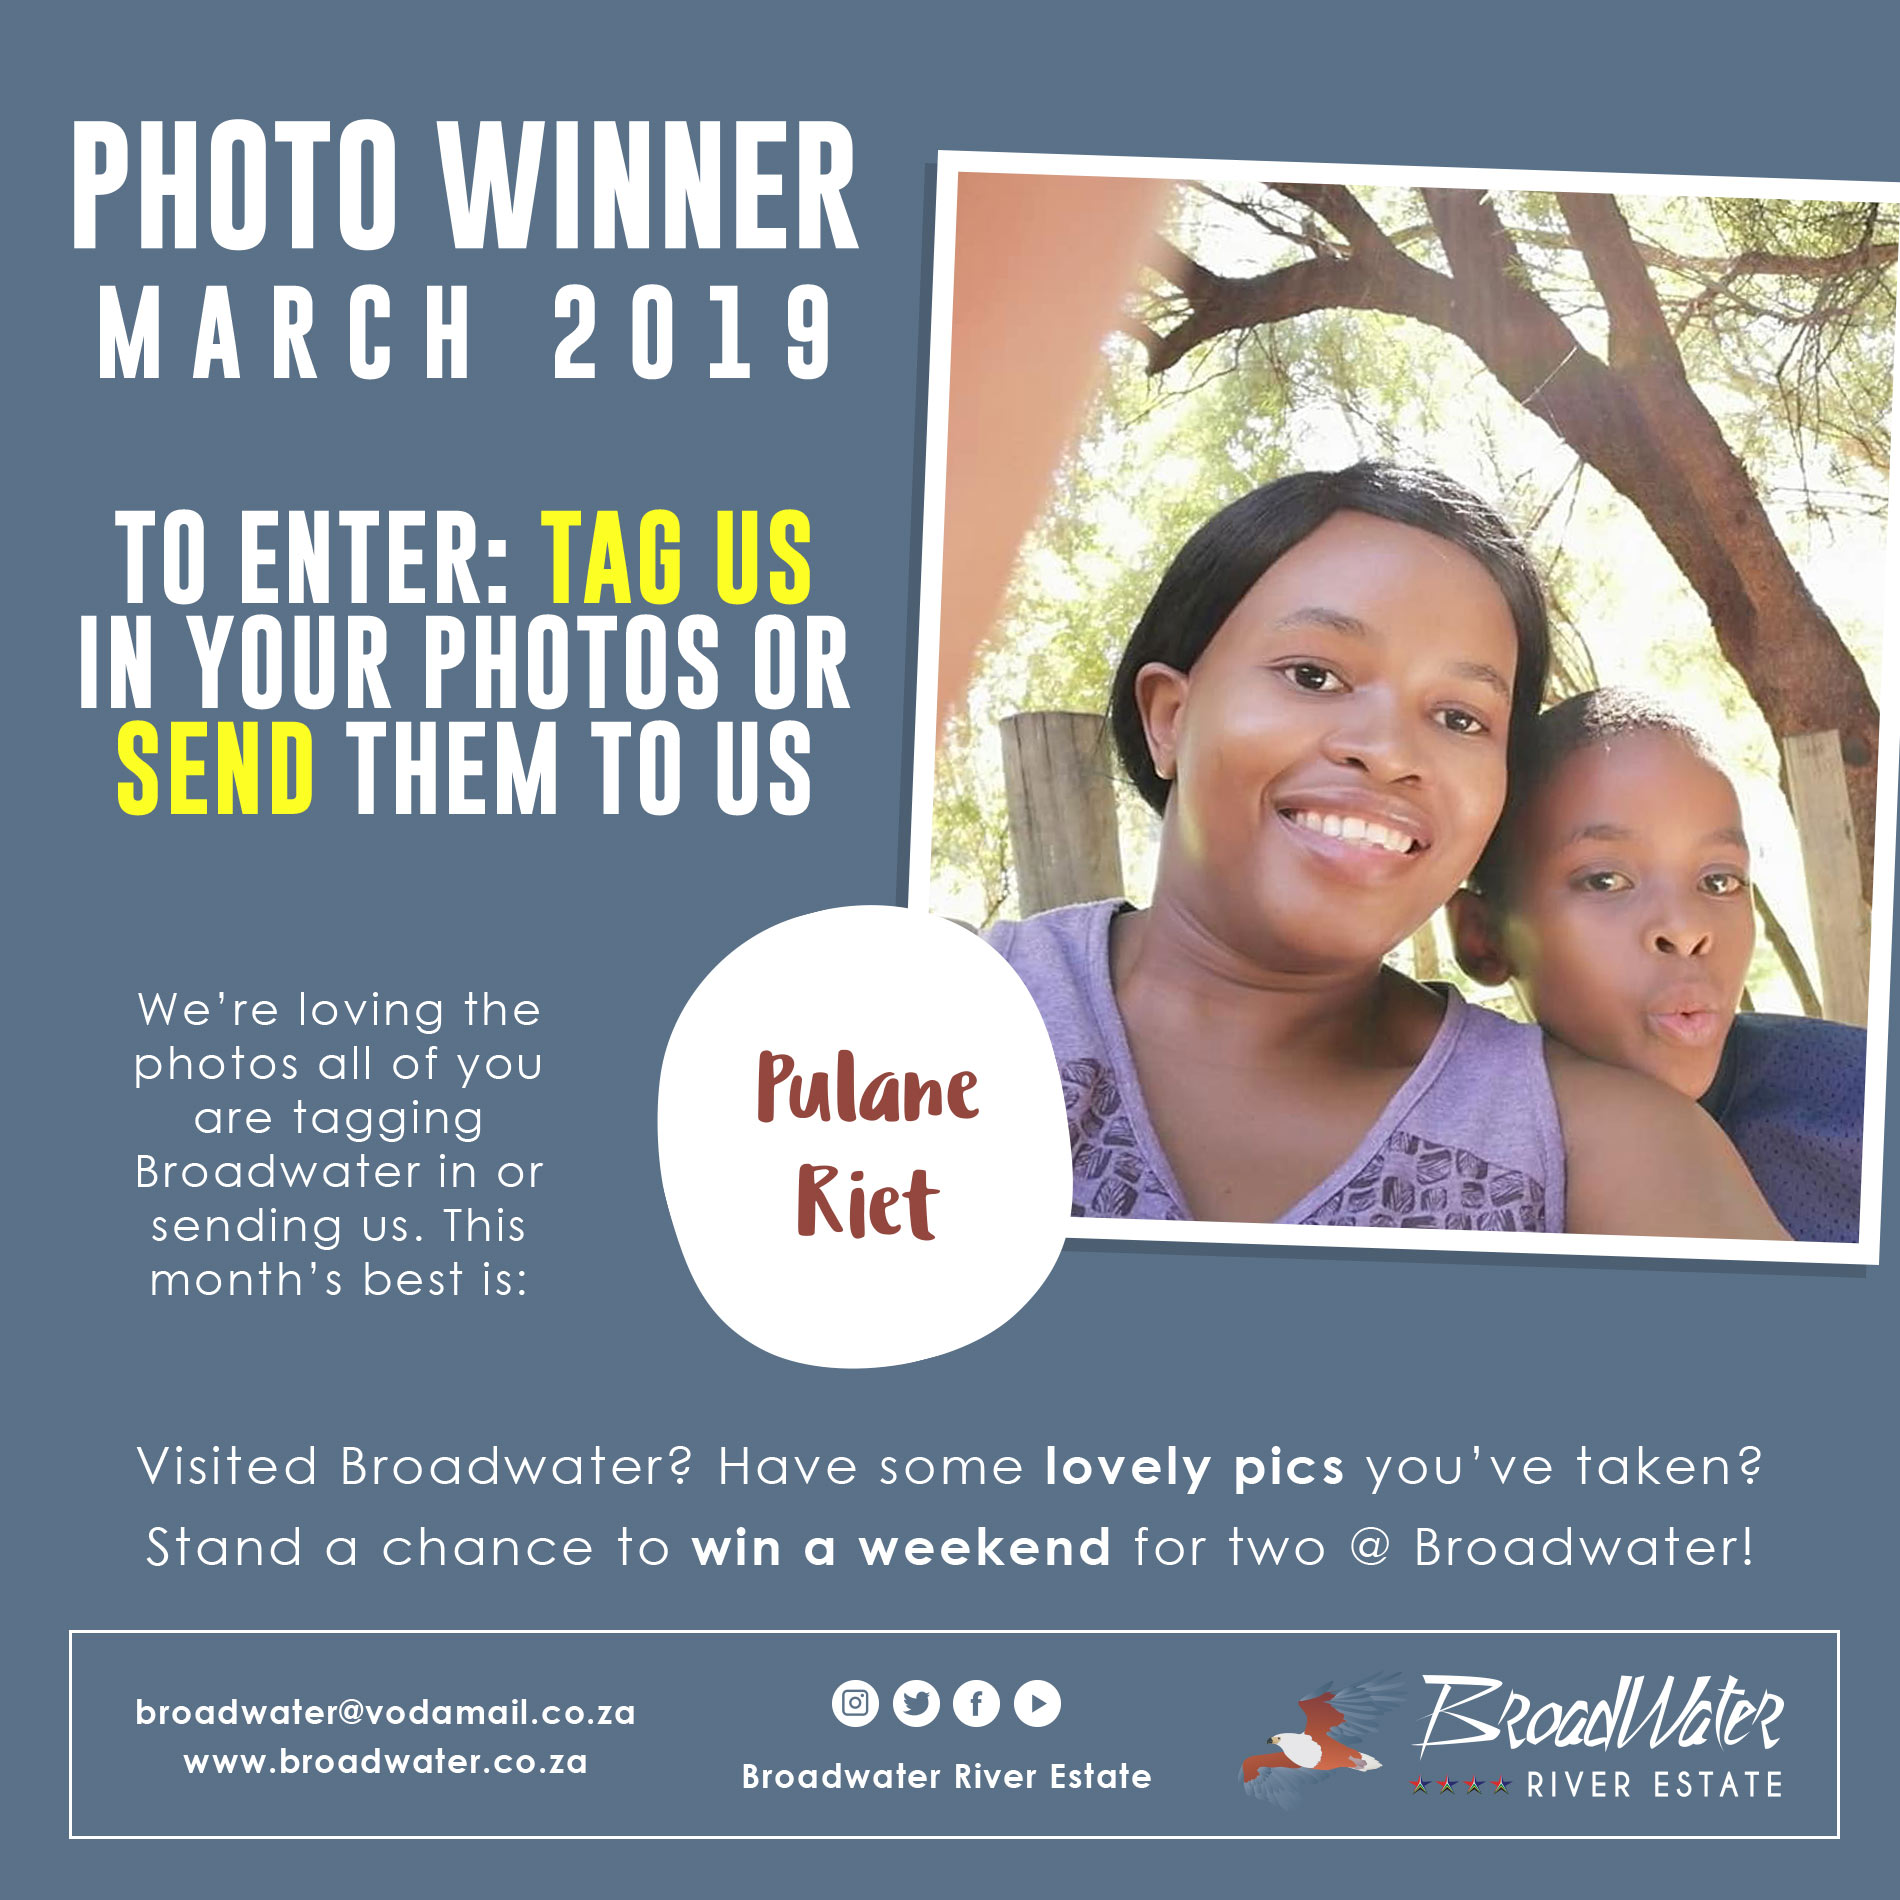 photo contest winner for march 2019